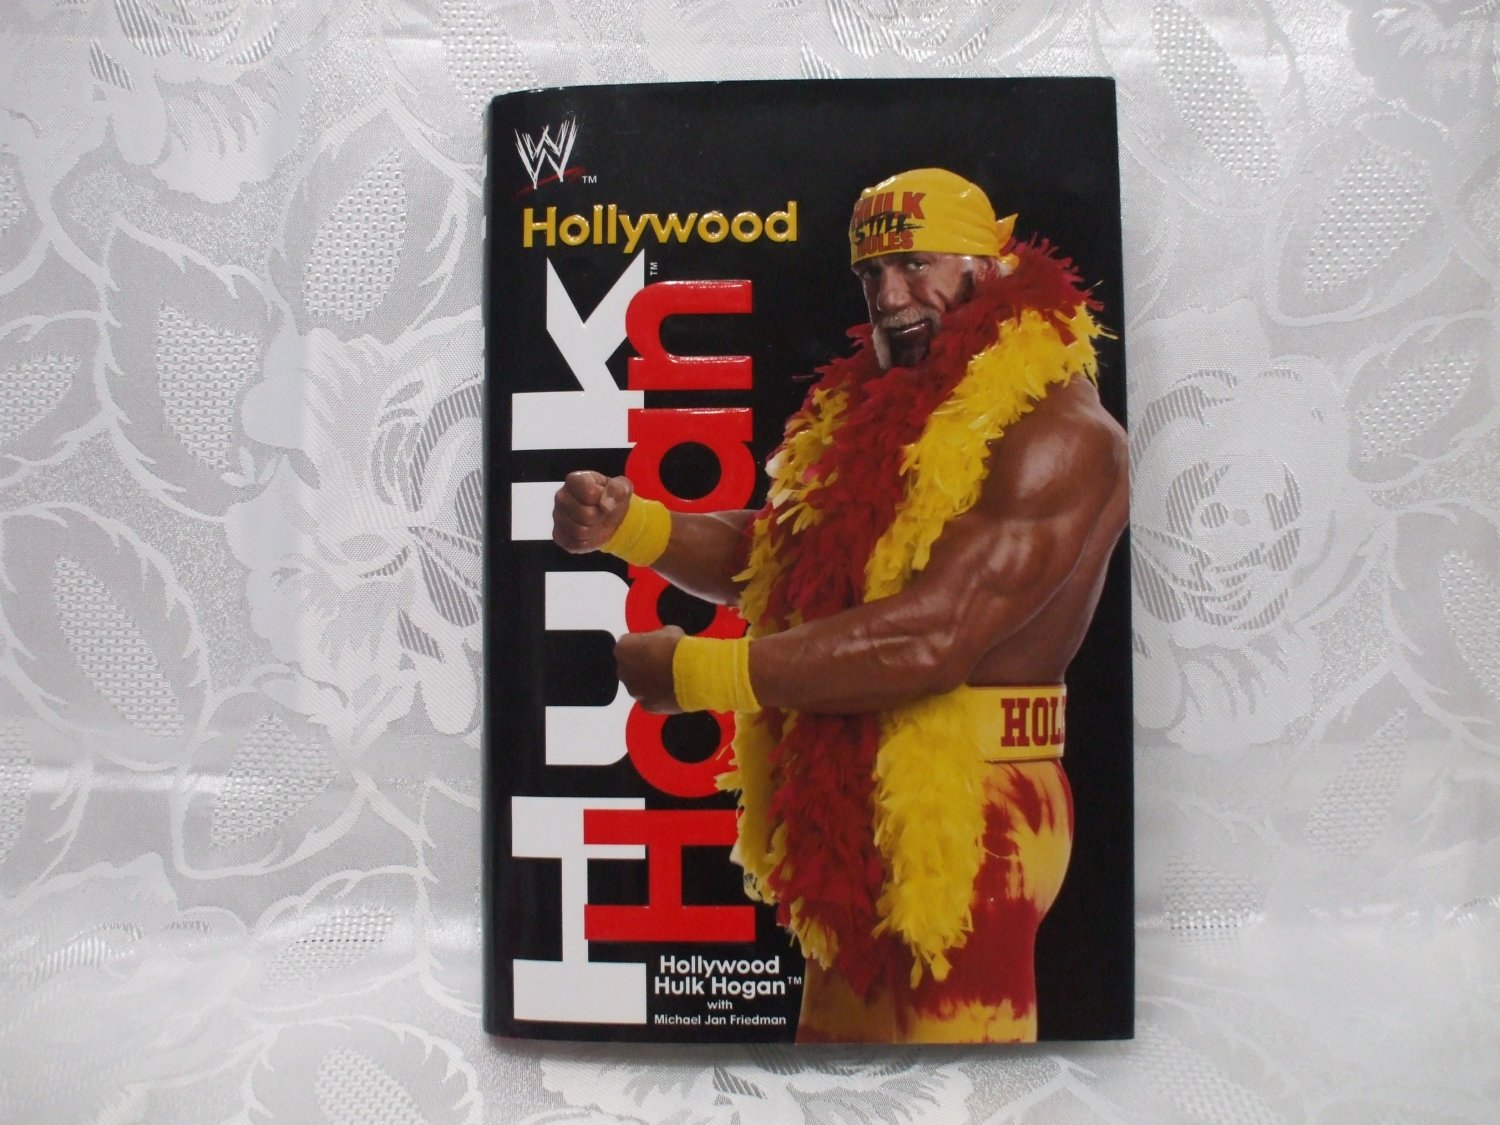 Hollywood Hulk Hogan Autobiography Hardcover With Dust Jacket